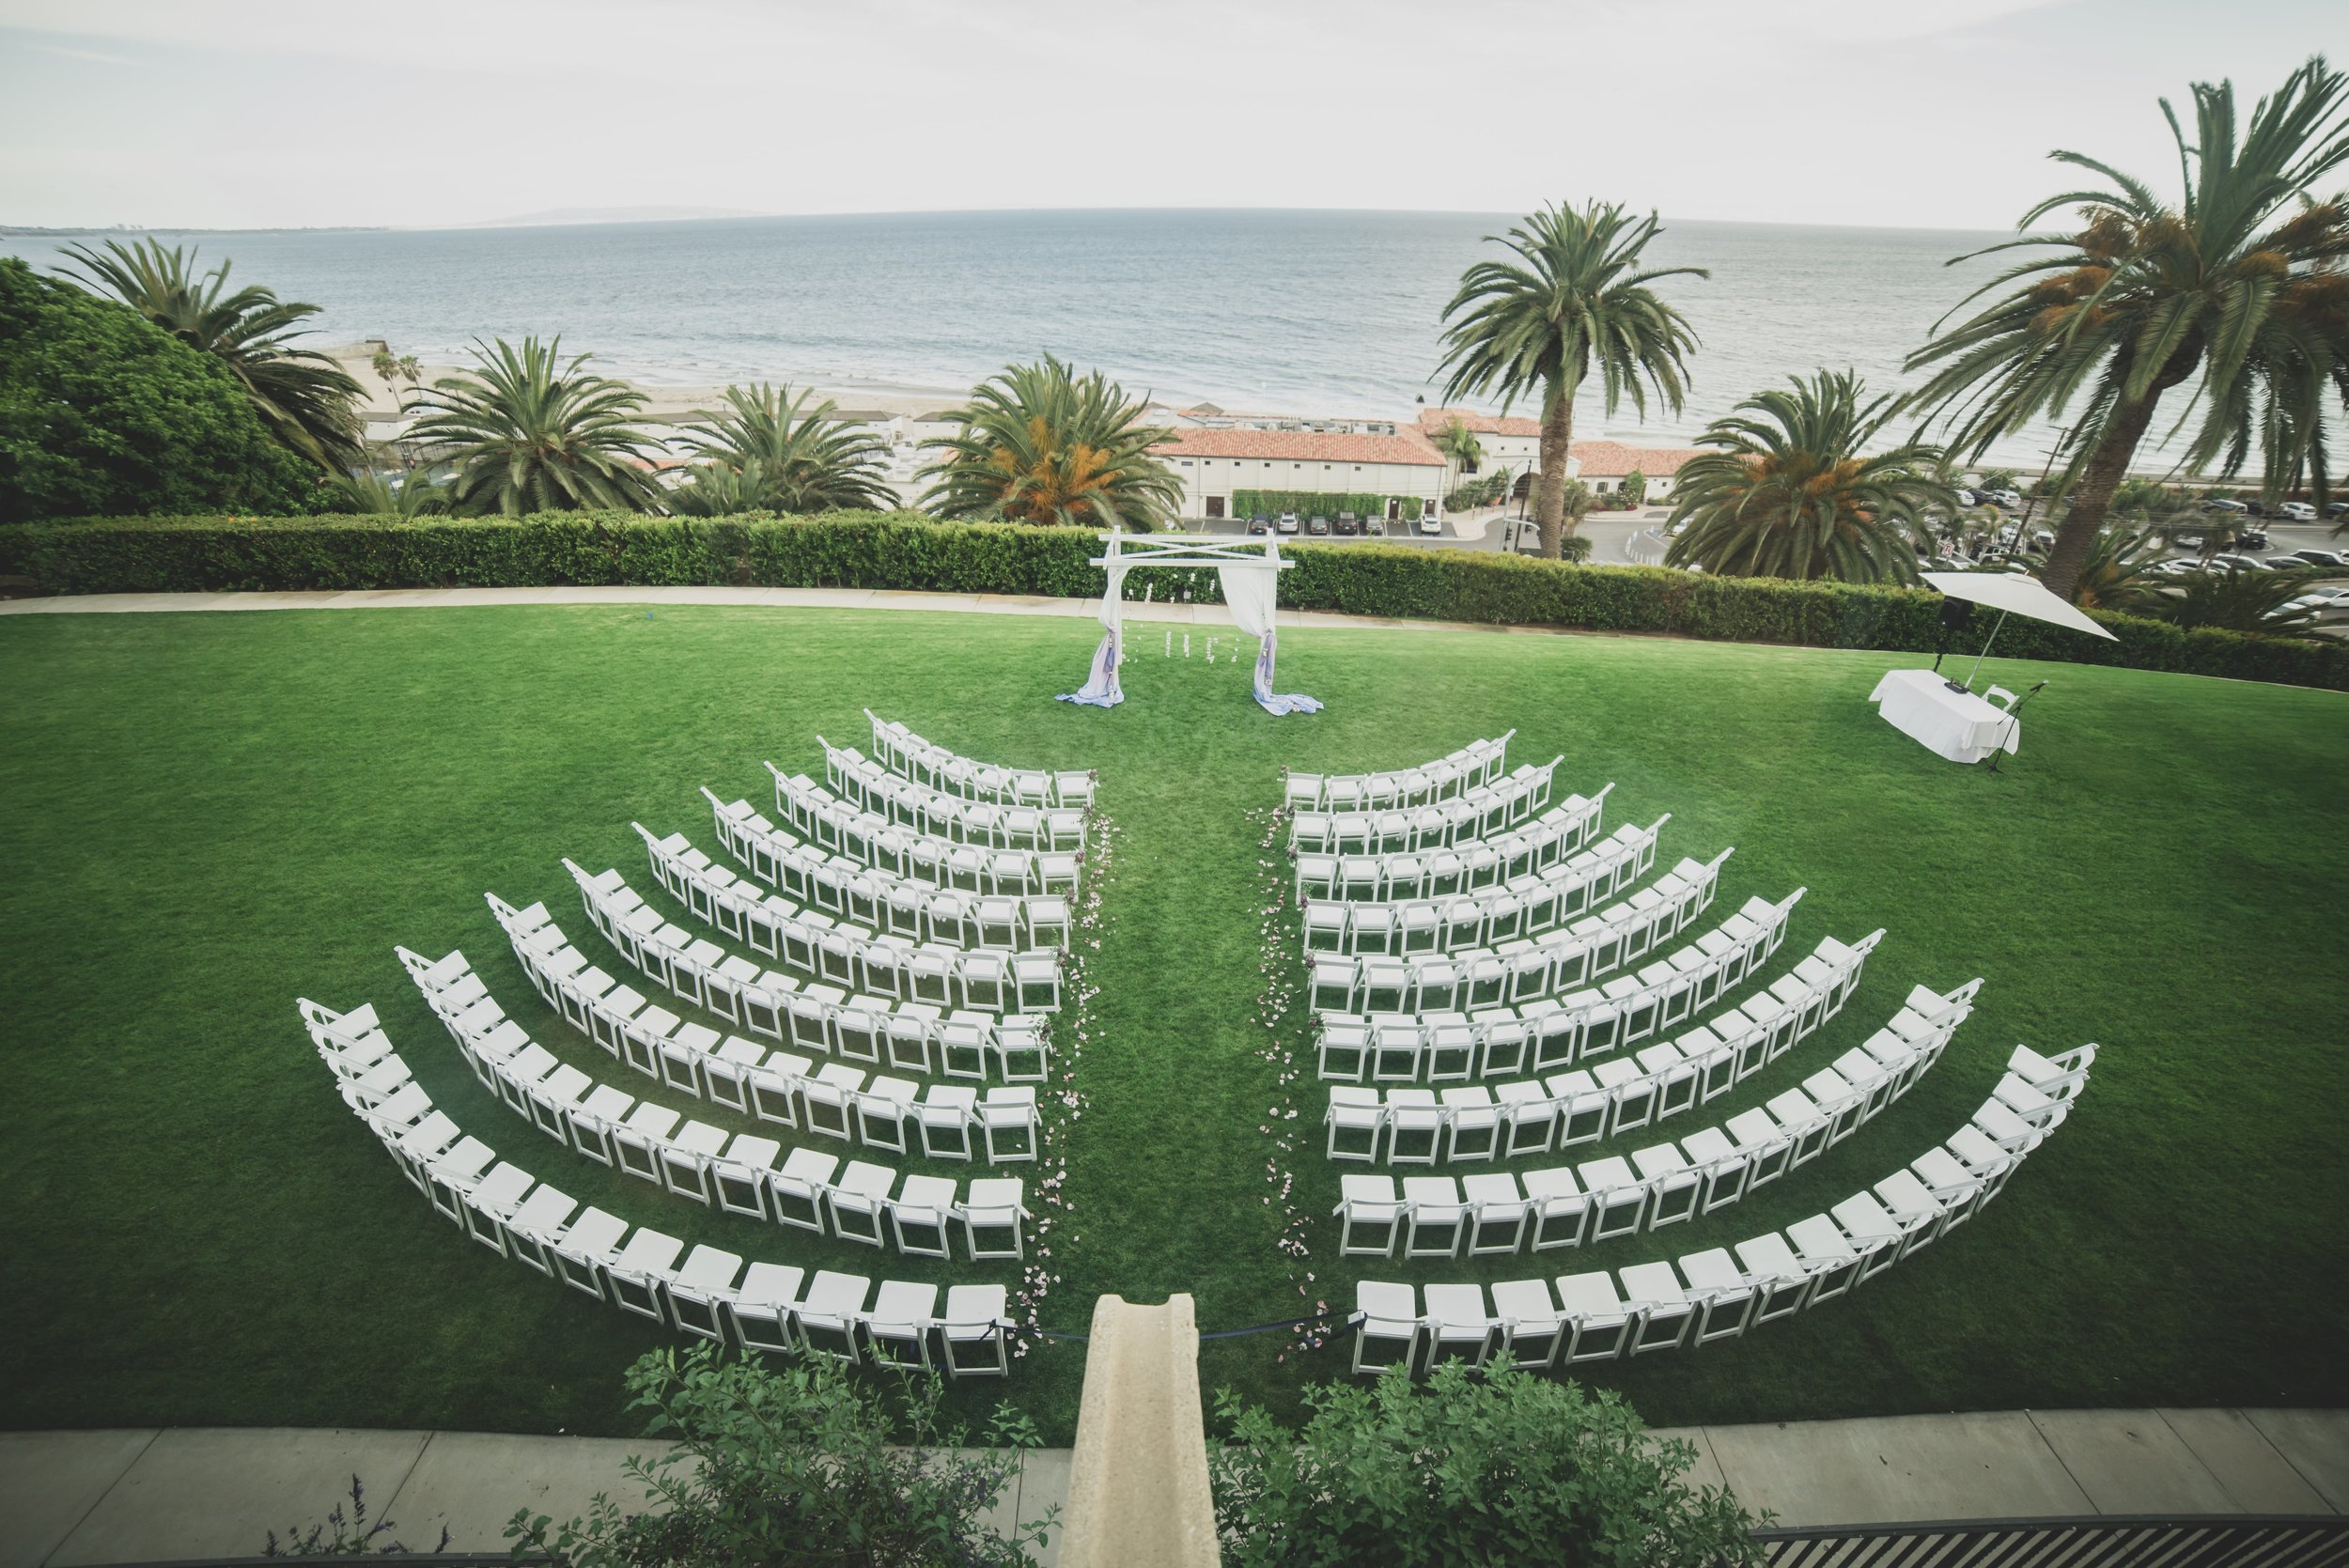 Wedding Photography - Pacific Palisades, CA - Bel Air Bay Club - Drone shot of the ceremony location.